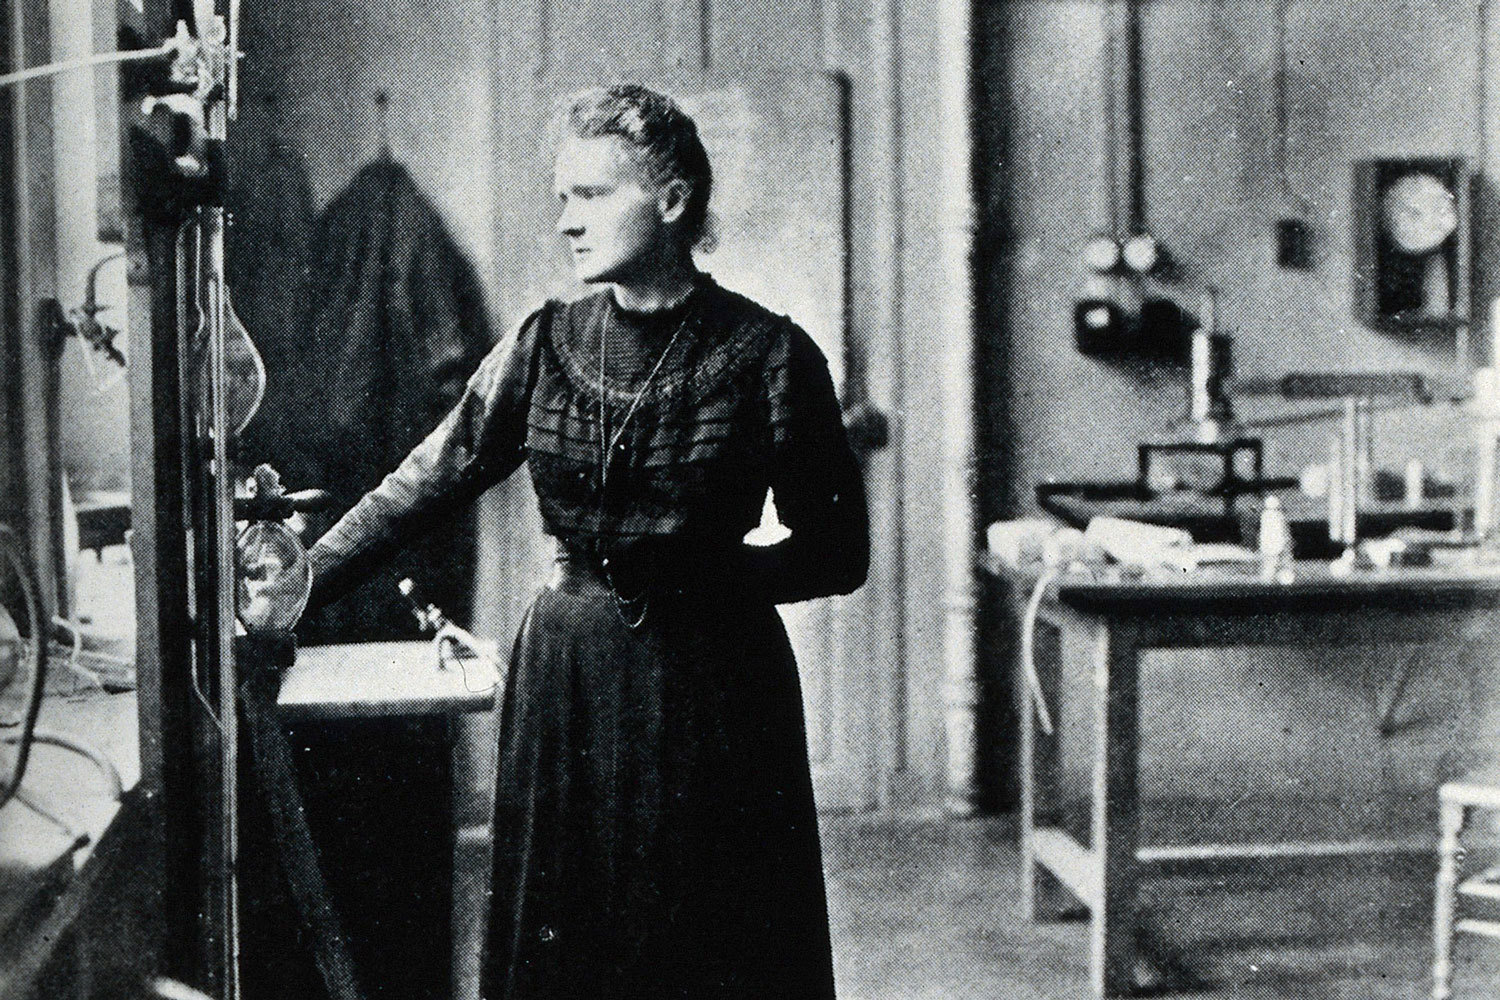 Portrait of Marie Curie [1867 - 1934], Polish chemist (...), Unknown, Wellcome Collection, CC BY